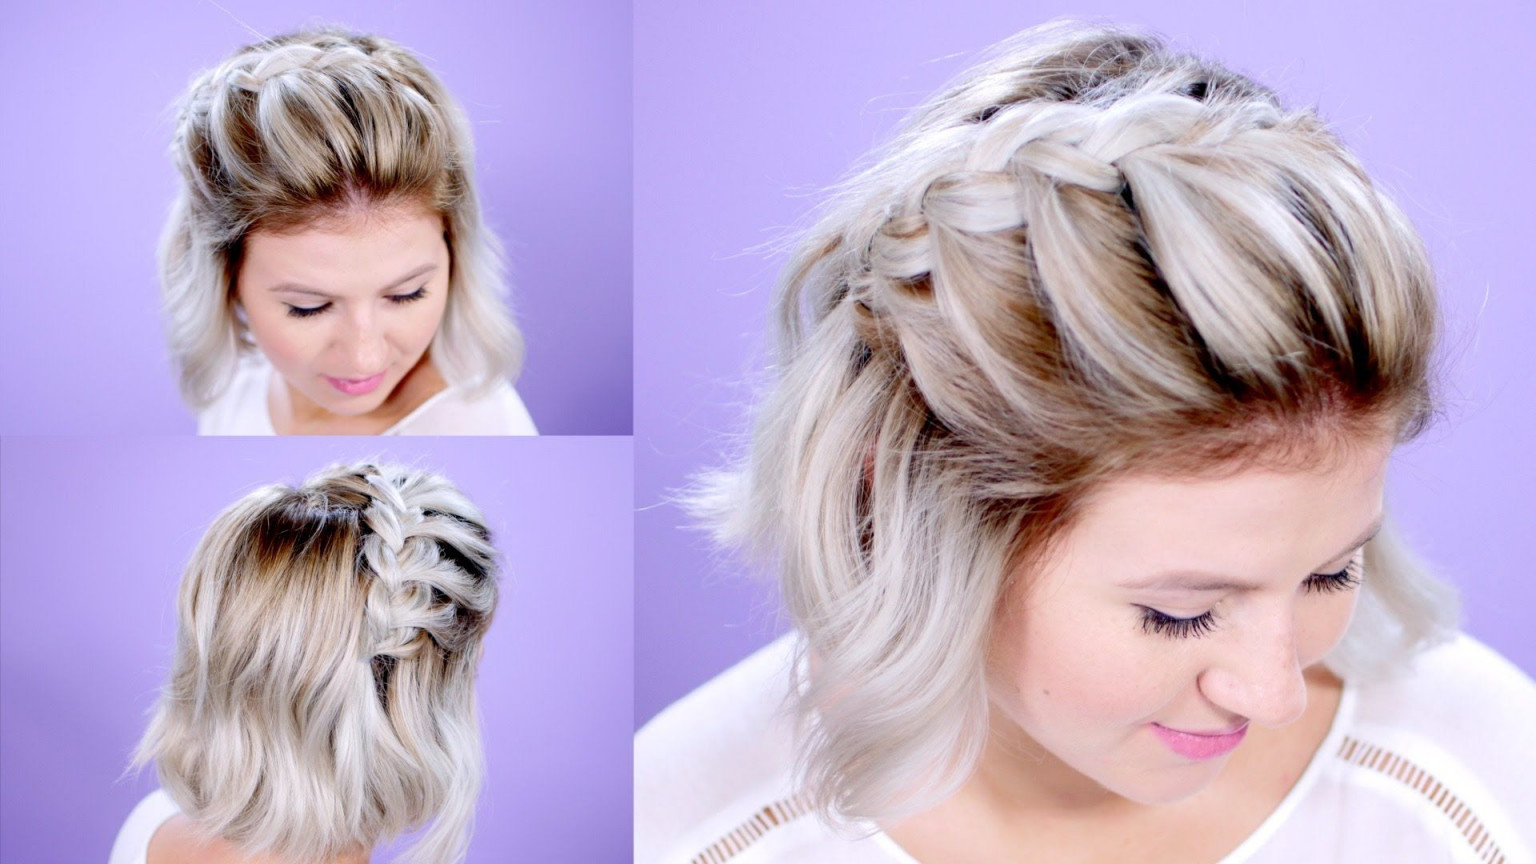 Braided Donut Hairstyles For Short Hair-Medium Length Hair